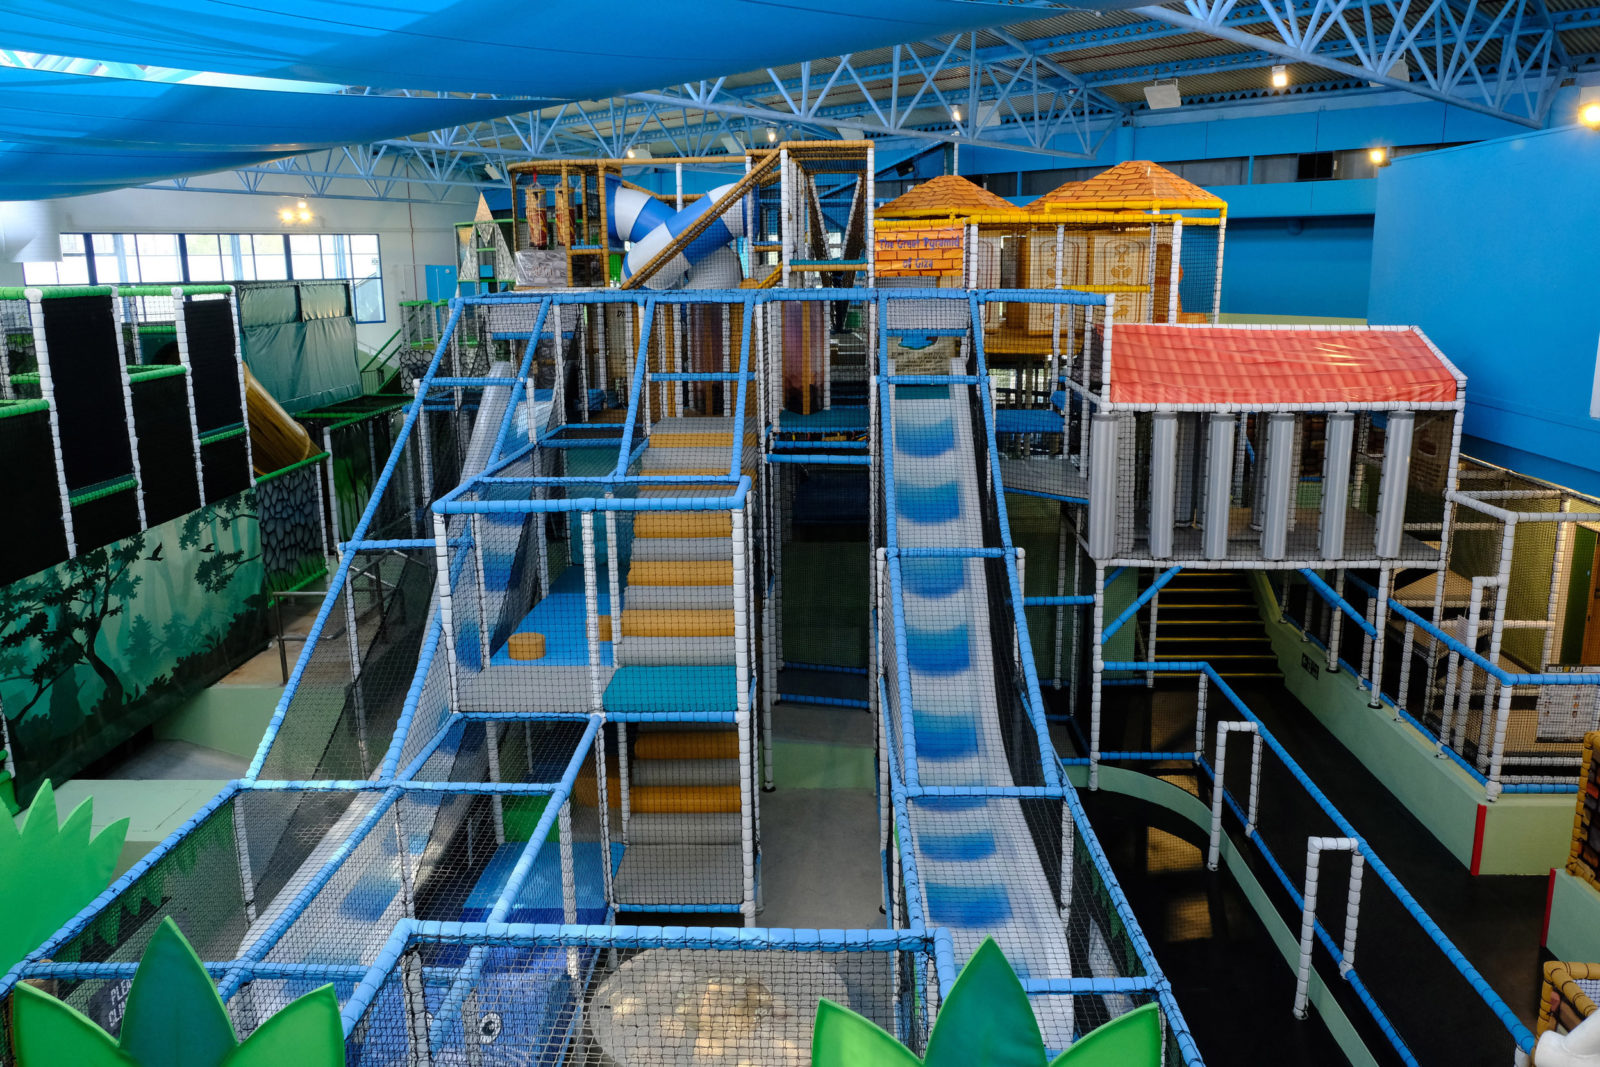 AT YOUR LEISURE: Brymor Construction has completed the first phase of a revamp at the Pyramids in Portsmouth with the creation of 'Exploria', a large play and bounce attraction.